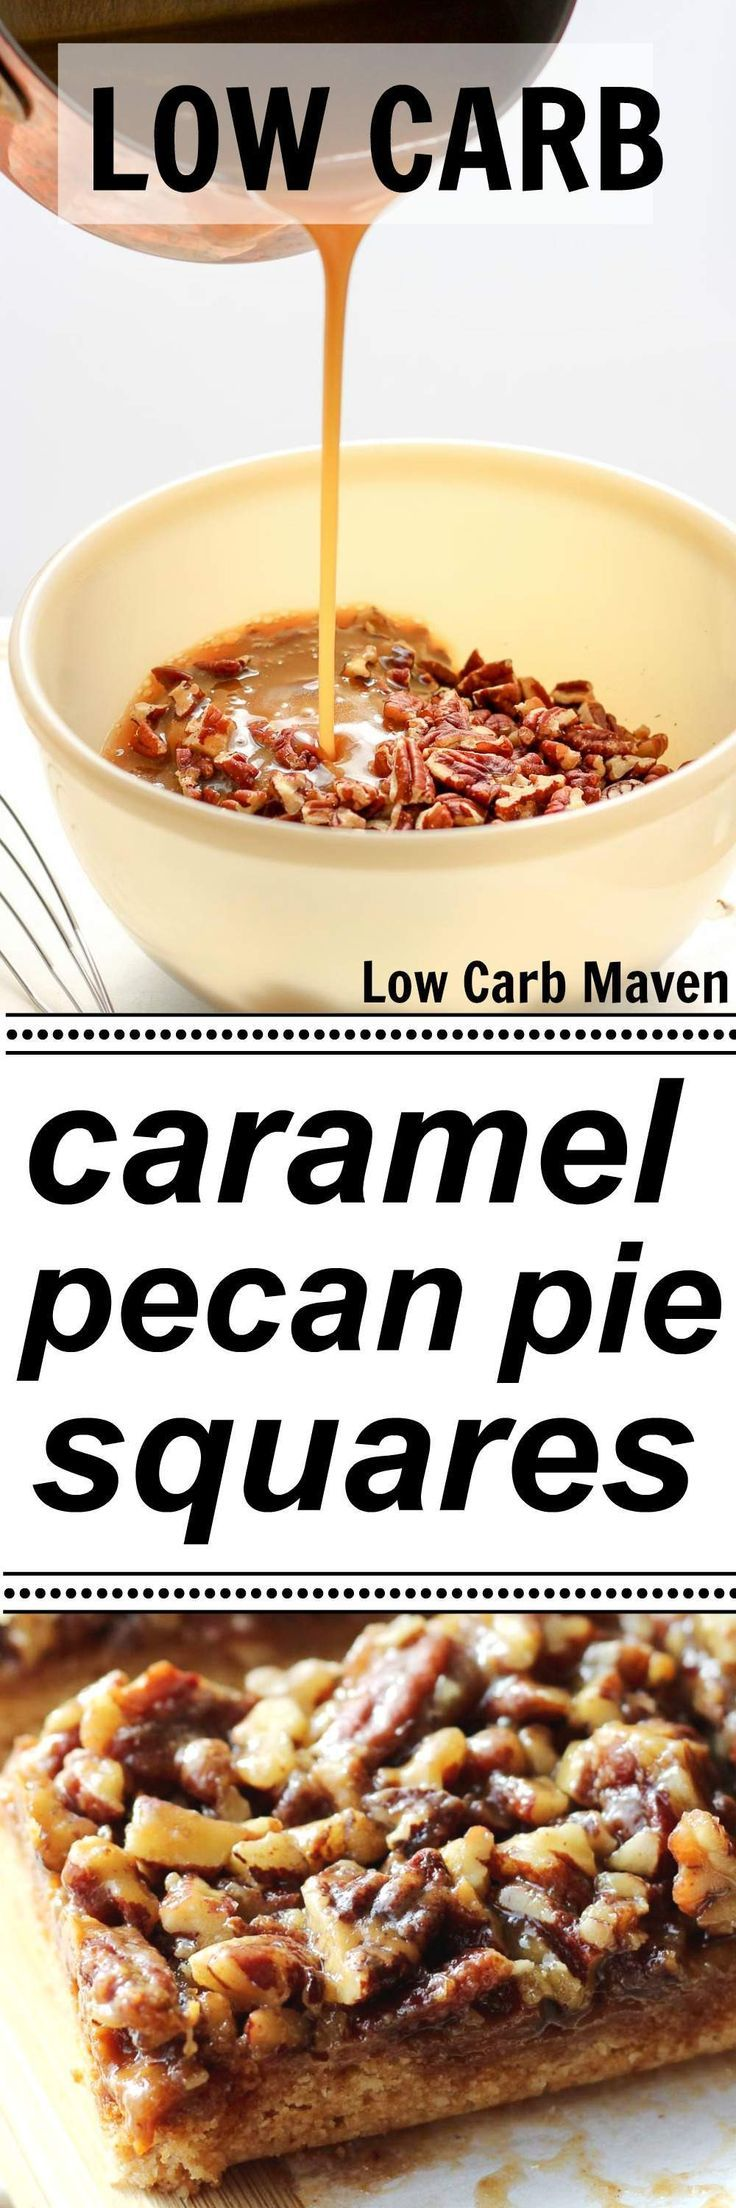 Low Carb Caramel Pecan Pie Squares are sugar free, gluten free and keto